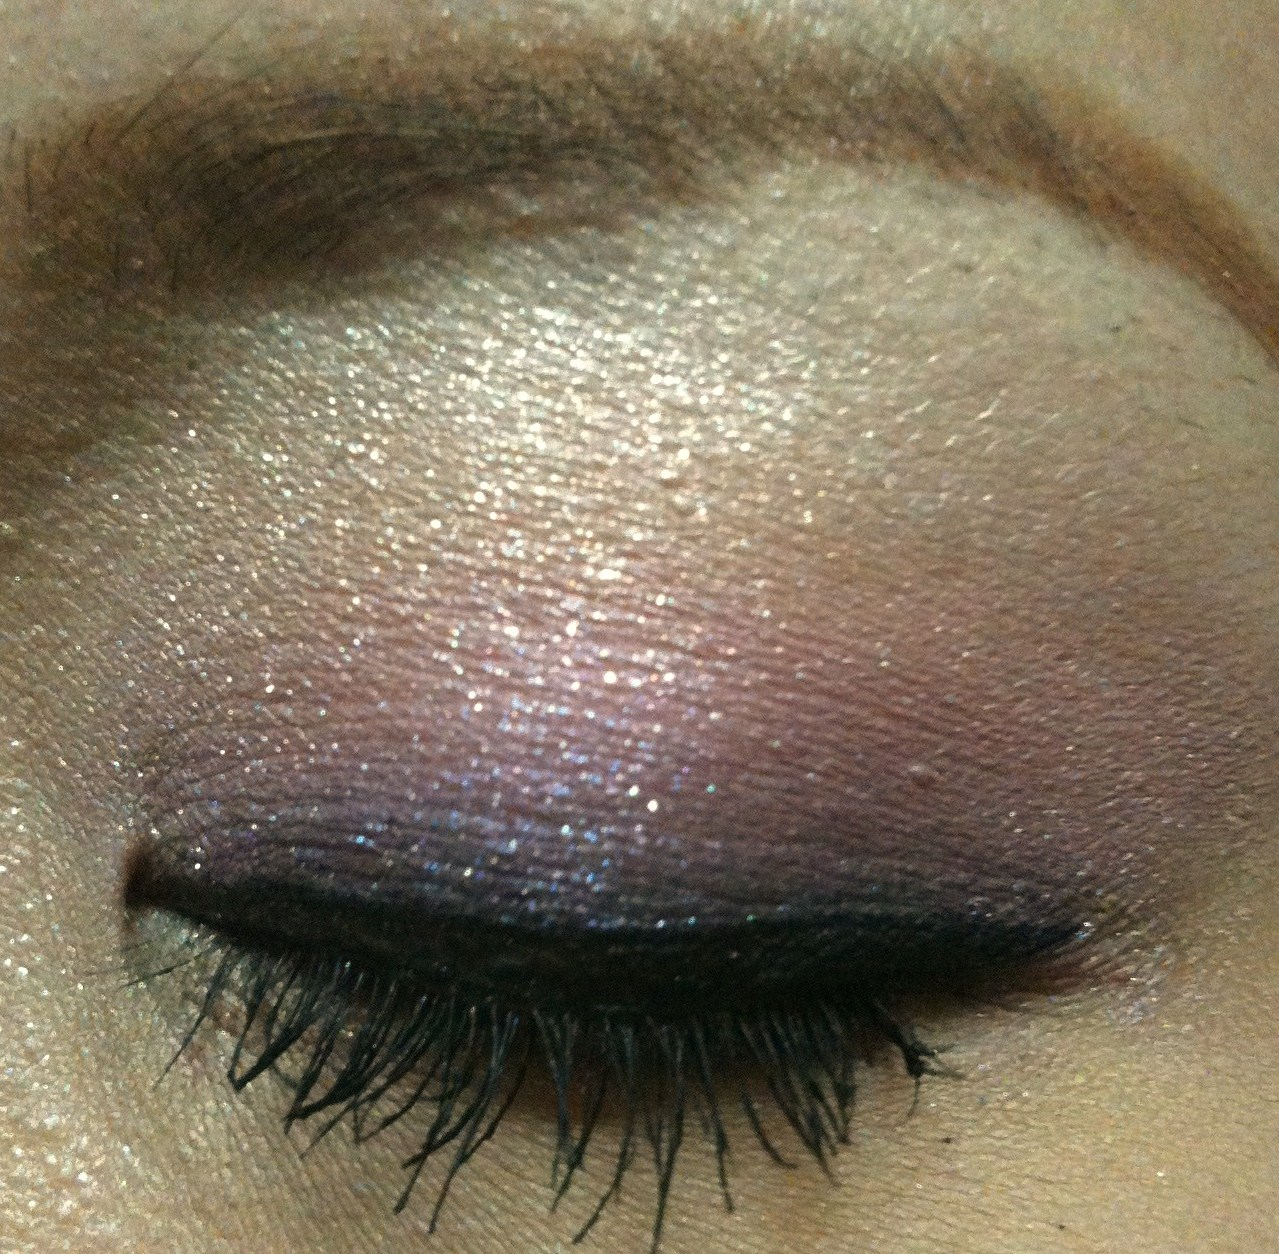 Luvverlyn Lotd Missy Jill Stuart Beauty Gel Liner Black This Palette Has A Pretty Color Combination Which Creates Soft Romantic Smoky Eye Look Oh Btw It Is My First Makeup Product From